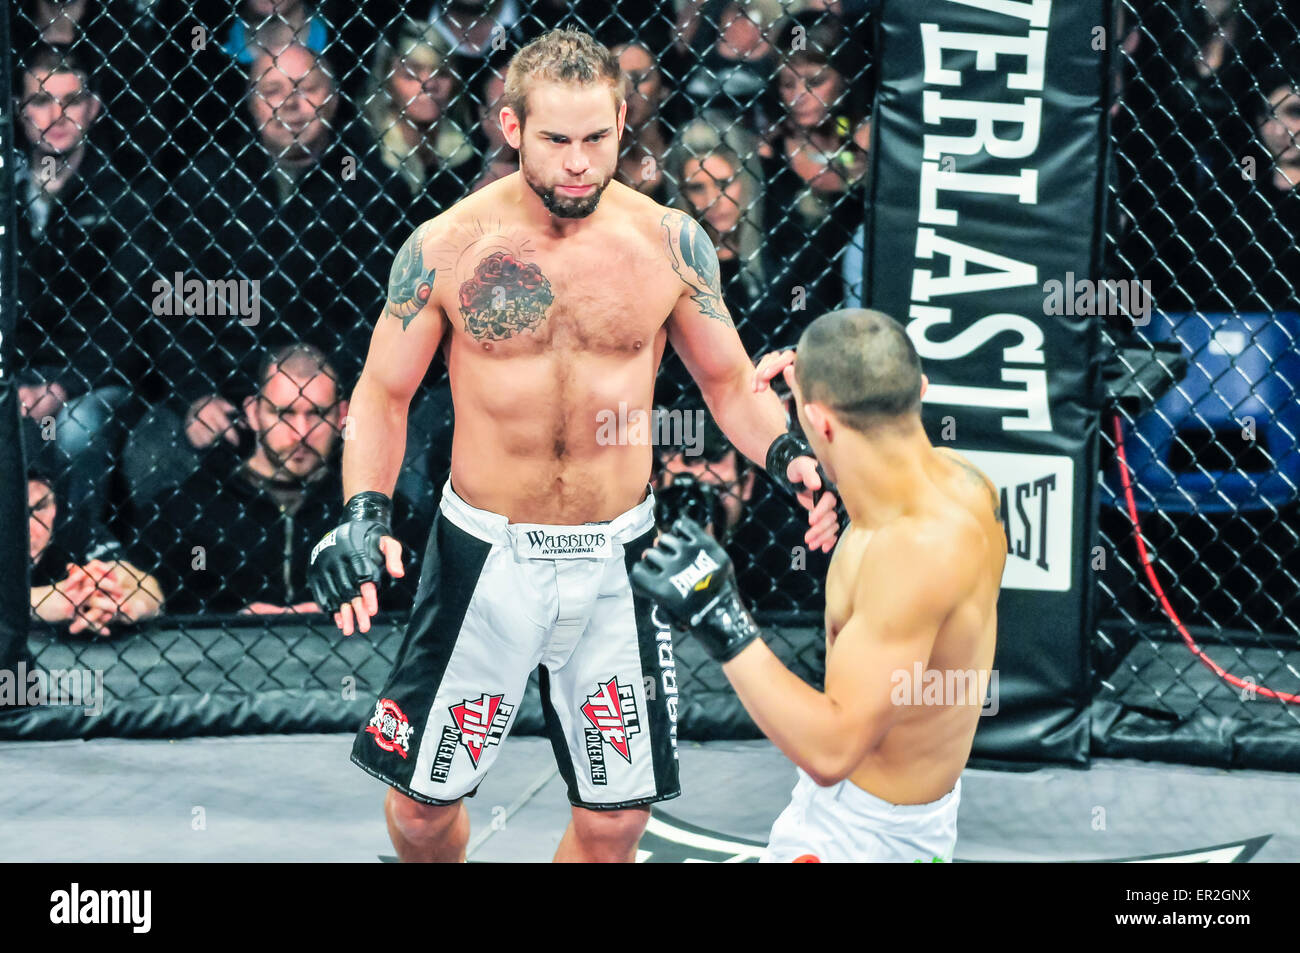 UFC fighter Rich Clementi in the ring at an MMA cage fight against Chris Stringer. - Stock Image